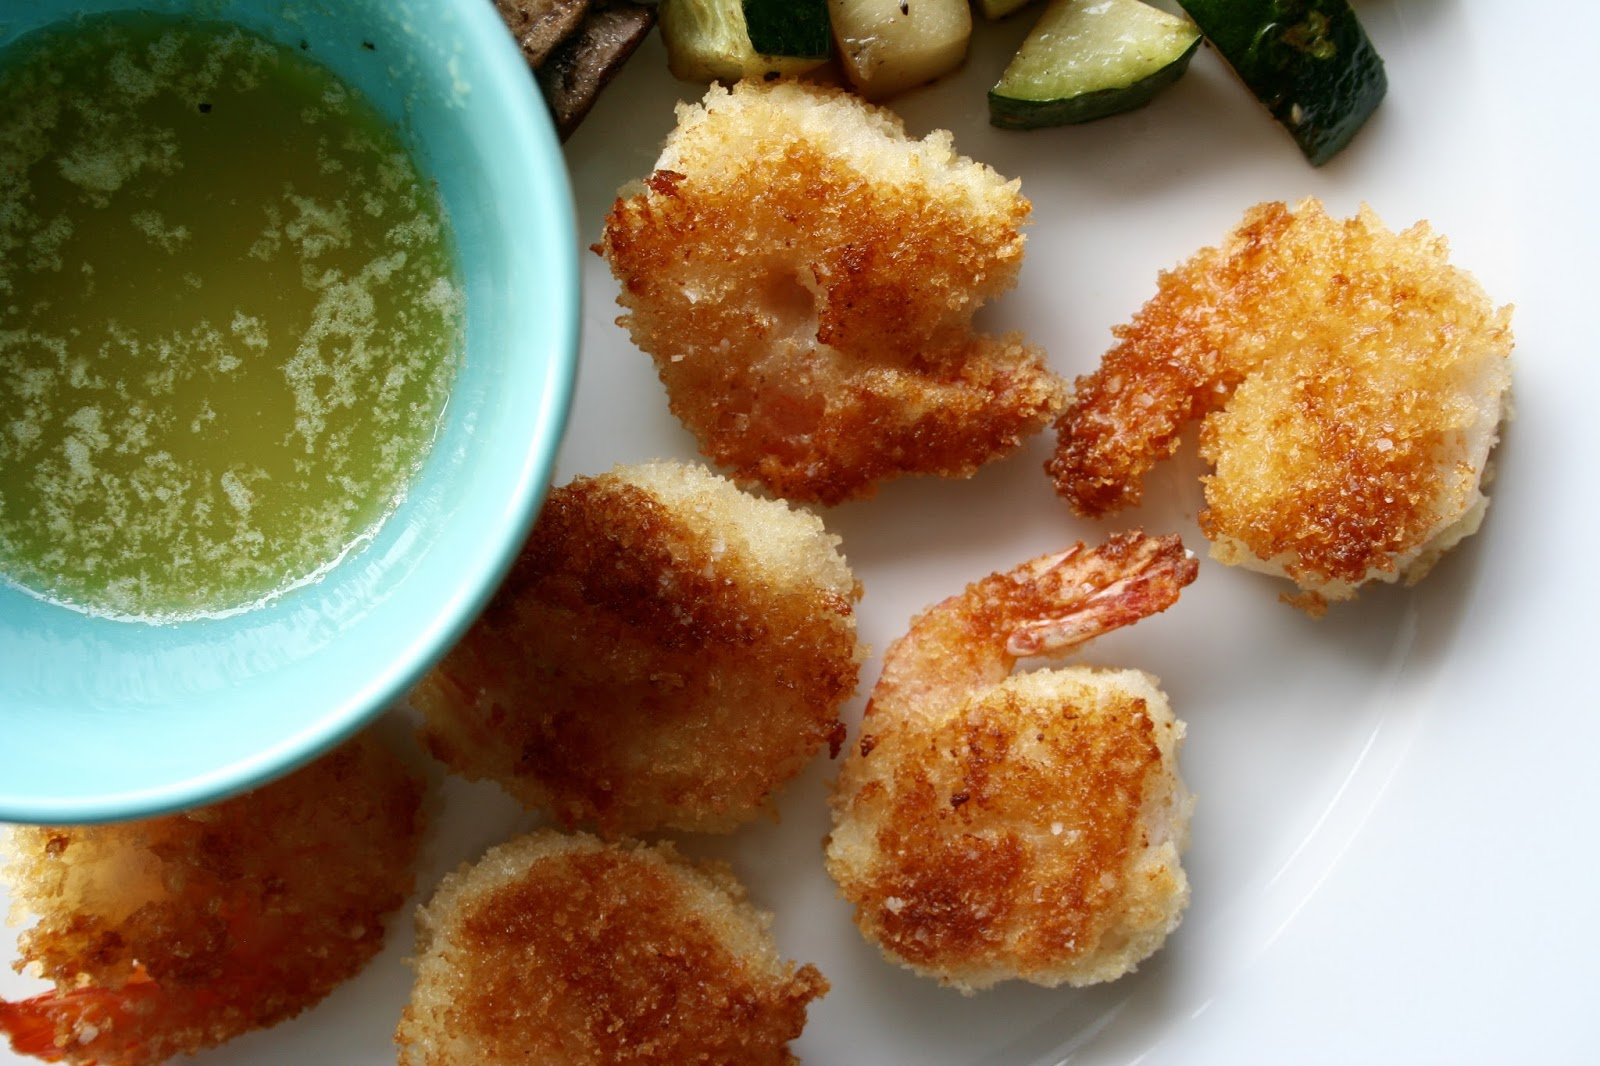 Baked Batter Fried Shrimp With Garlic Butter Dipping Sauce